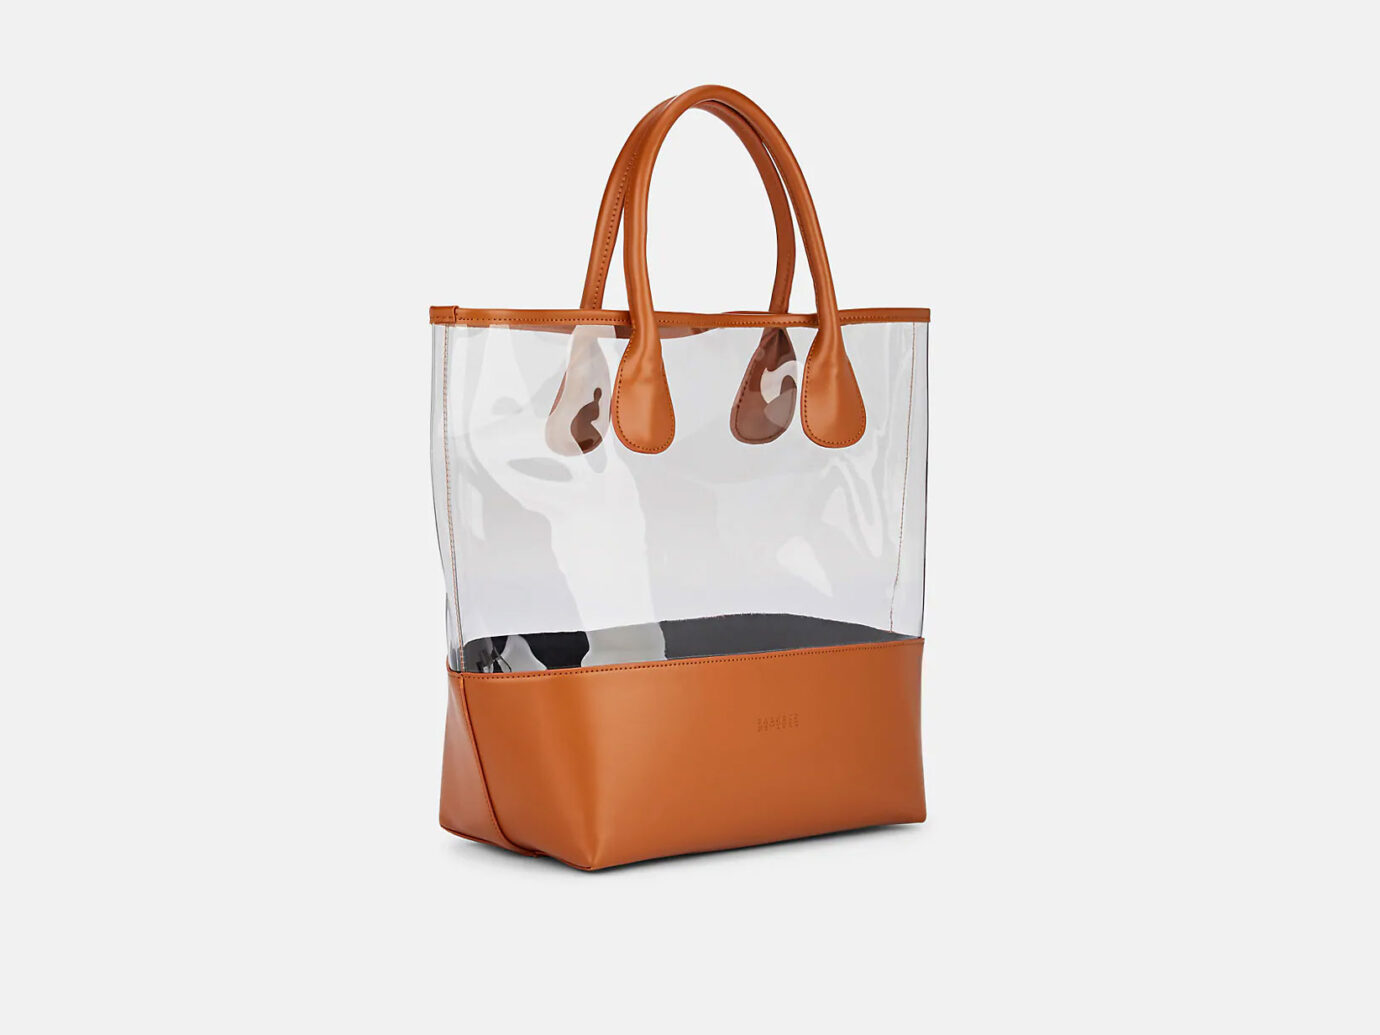 BARNEYS NEW YORK Jelly Leather-Trimmed PVC Tote Bag